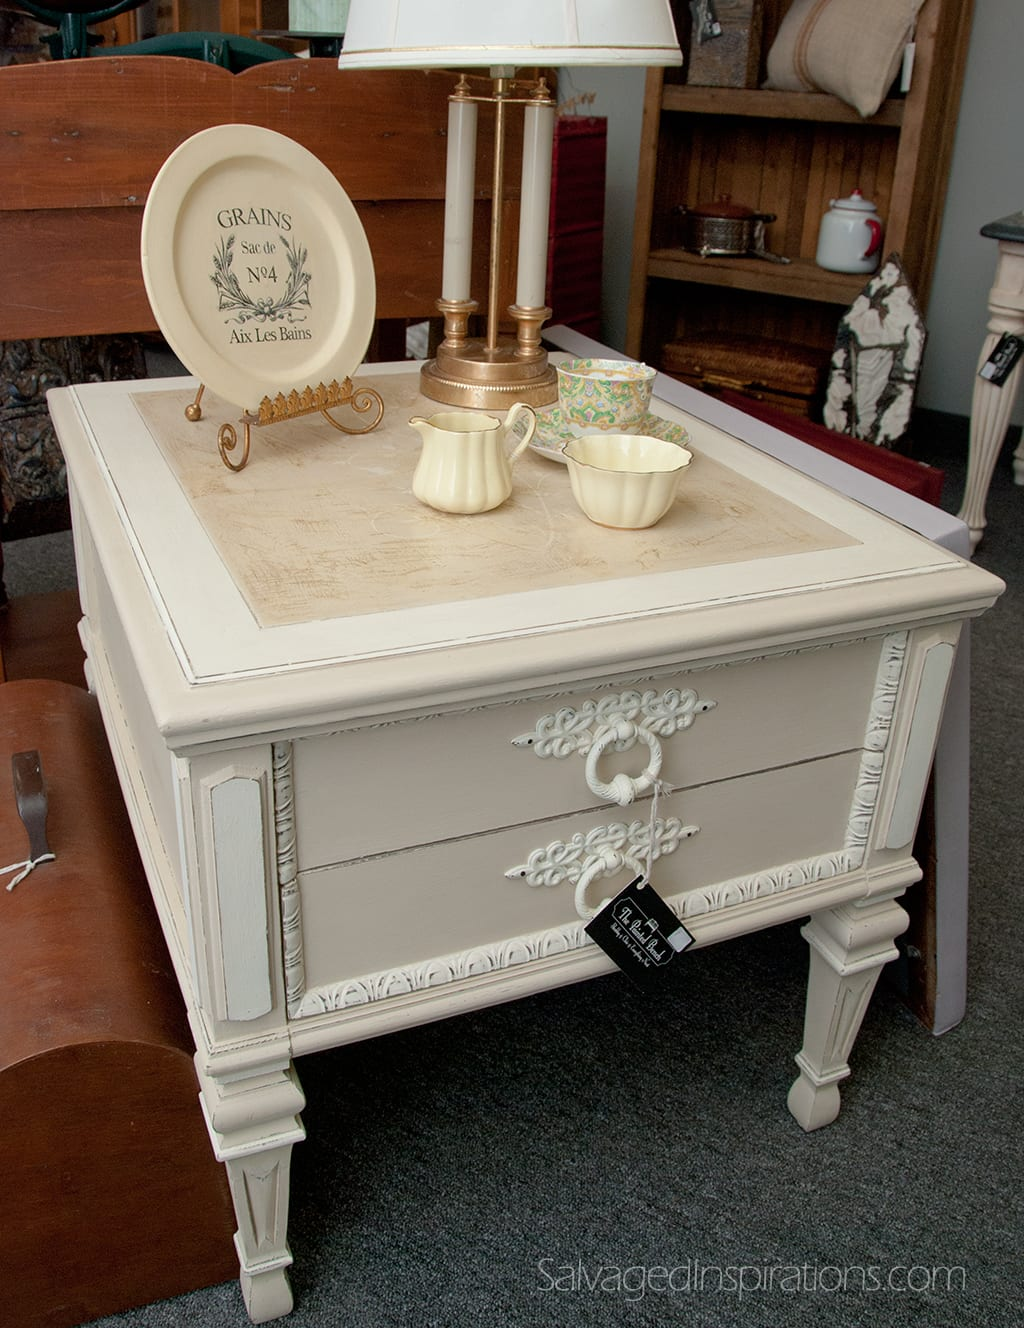 Repainted Furniture pricing your painted furniture - salvaged inspirations